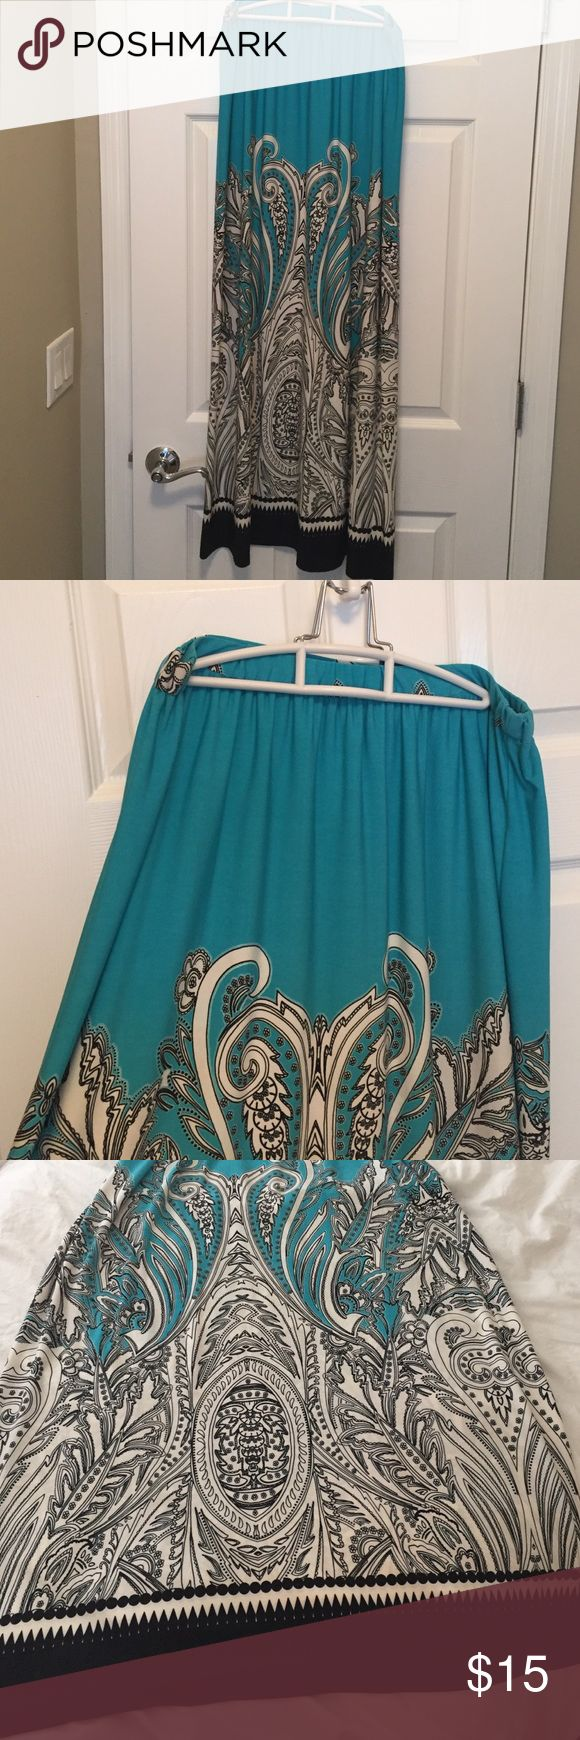 Teal maxi skirt with white and black design Maxi skirt with pretty black and white design. Elastic waist band. Size M. Very Flowy and comfortable fabric. No stains, tears or snags. Make an offer! Cute with a black or white top! Kelly & Diane Skirts Maxi